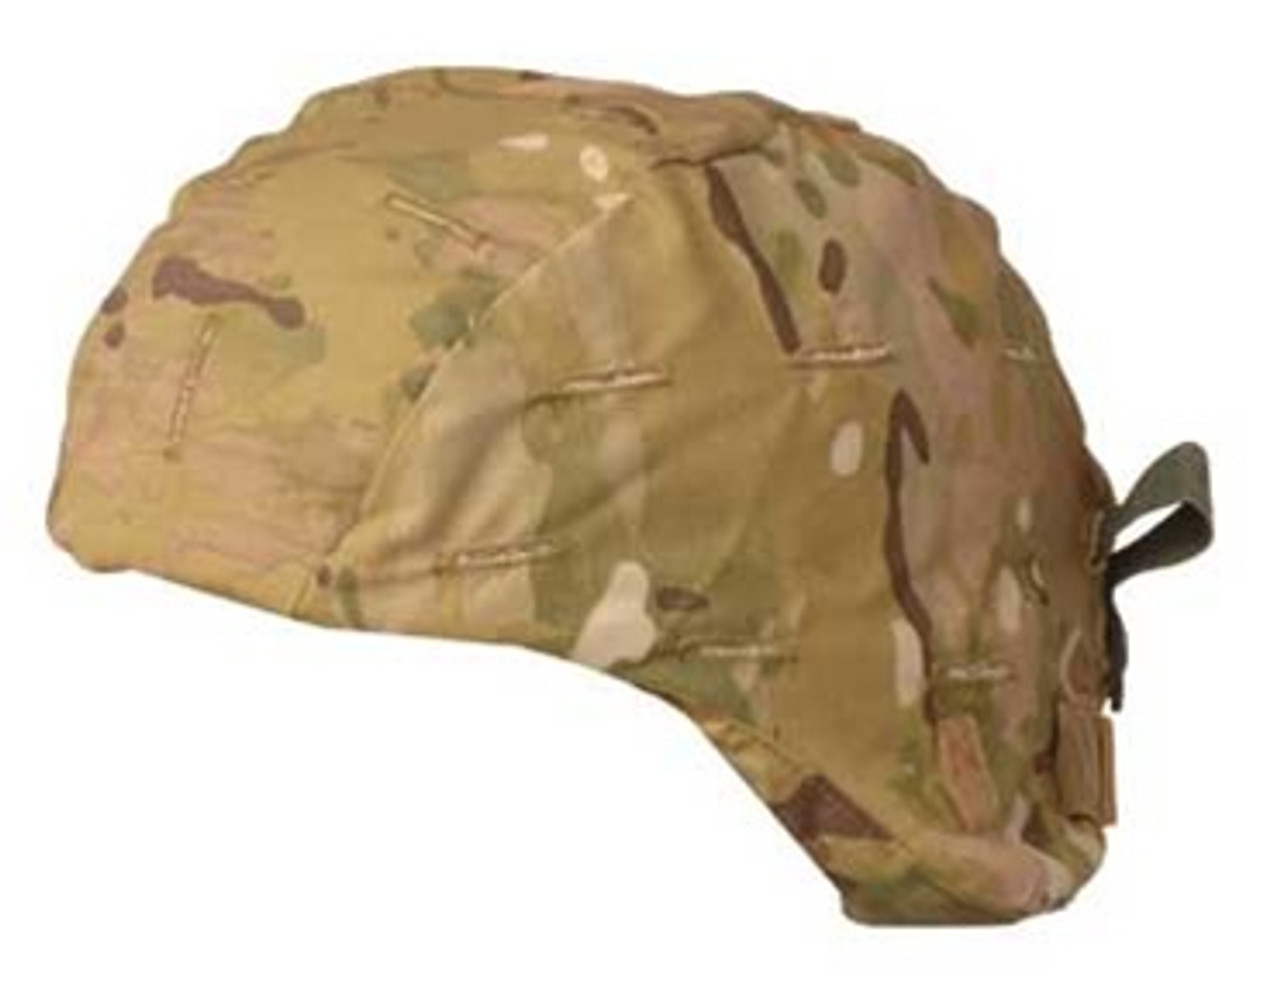 ACU digital camouflage helmet cover for the MICH ACH helmet.  Made of 50/50 Nylon-Cotton Ripstop.